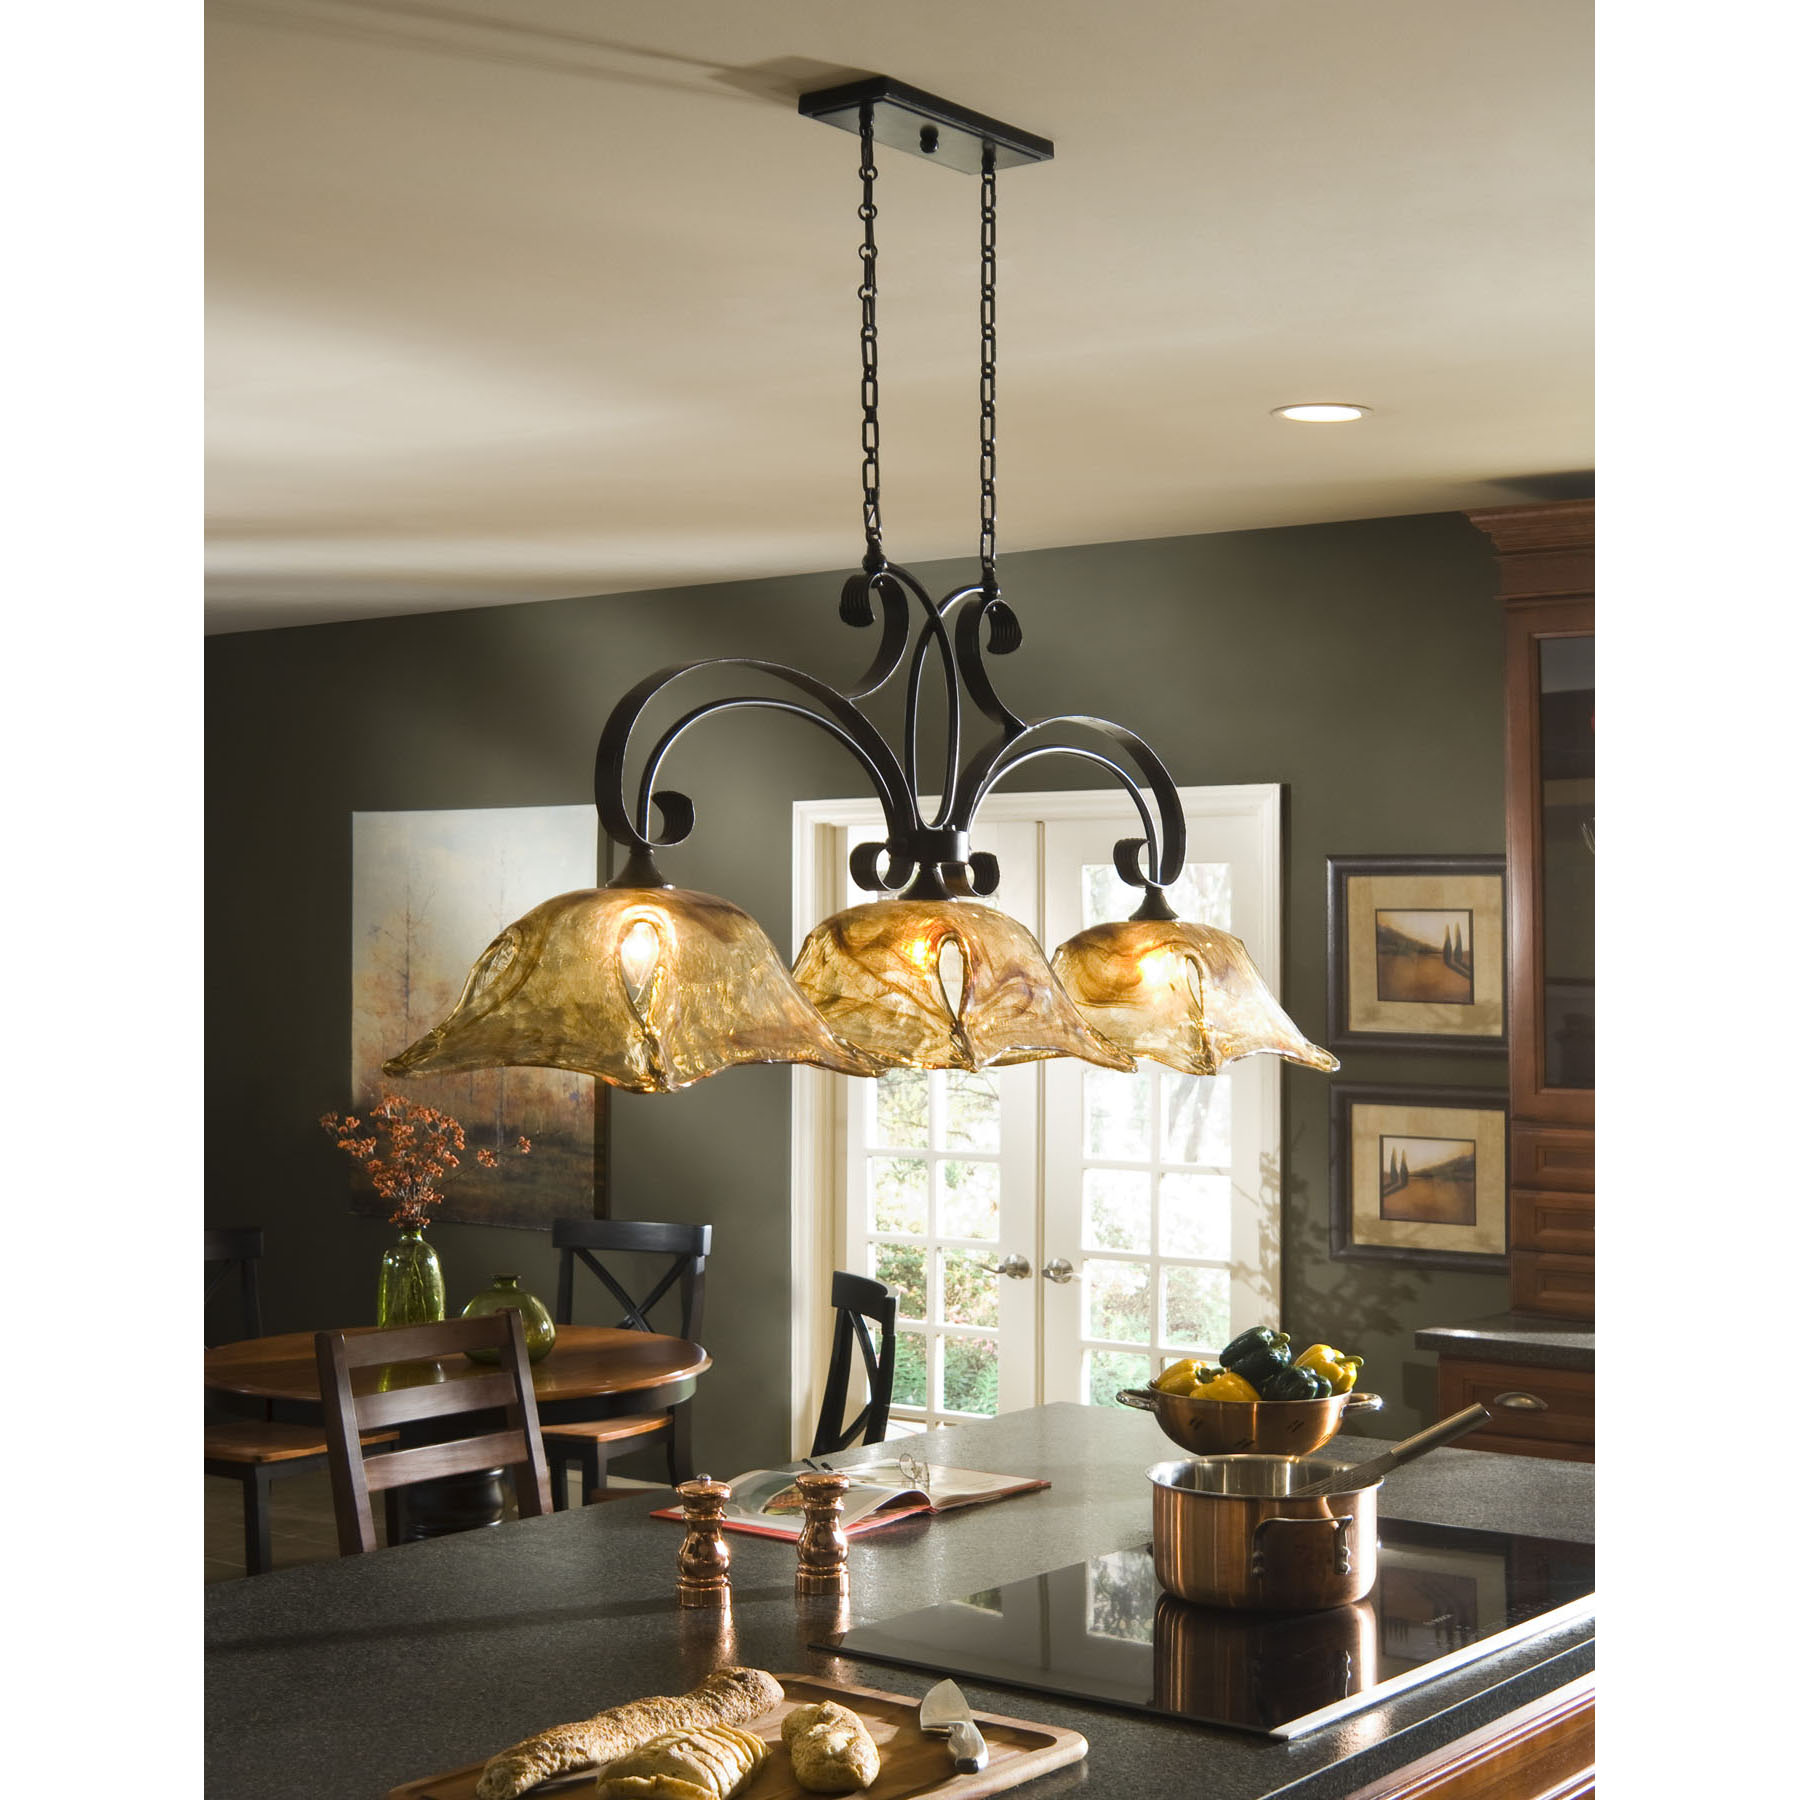 A tip sheet on how the right lighting can make the kitchen for Over island light fixtures